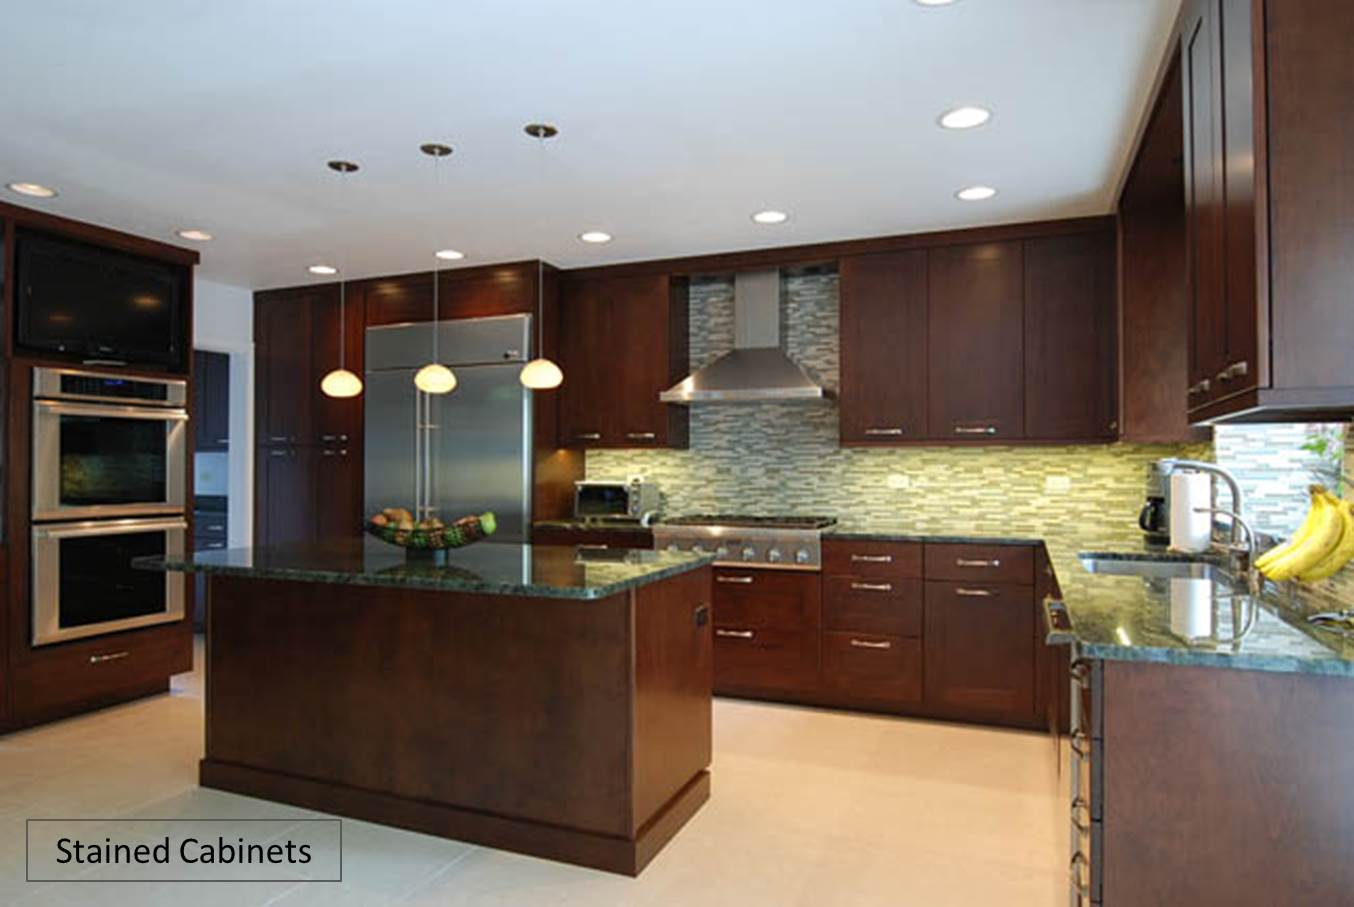 Painted Kitchen Cabinets Vs Stained custom kitchen cabinets: painted vs. stained